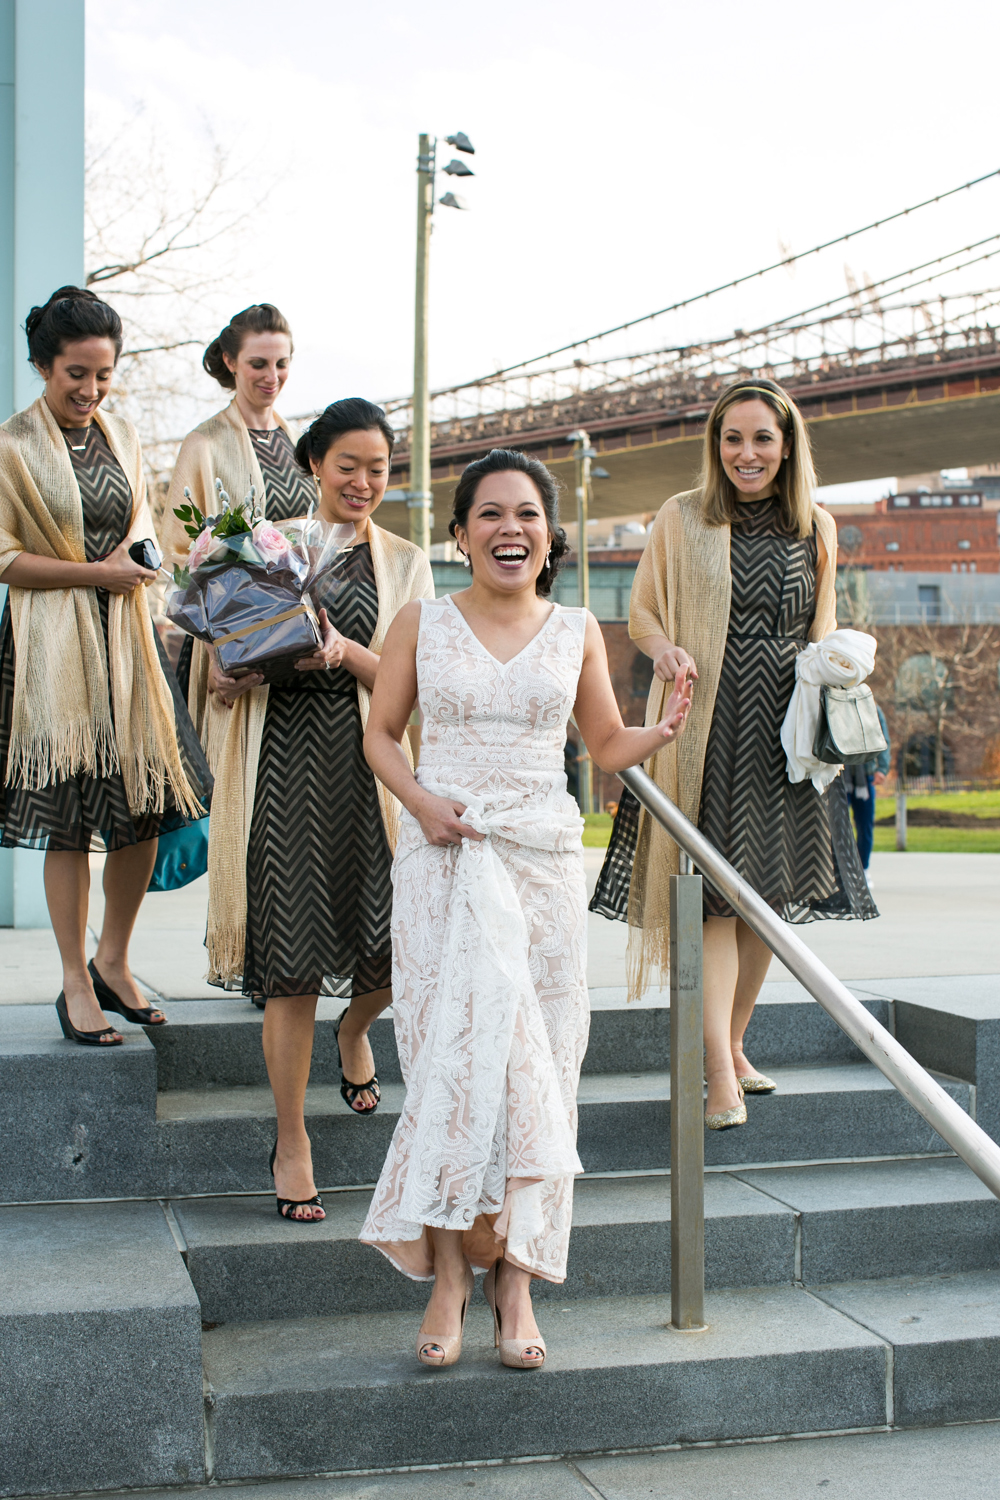 Lesbian Wedding first look | photographed by Amber Marlow, NYC